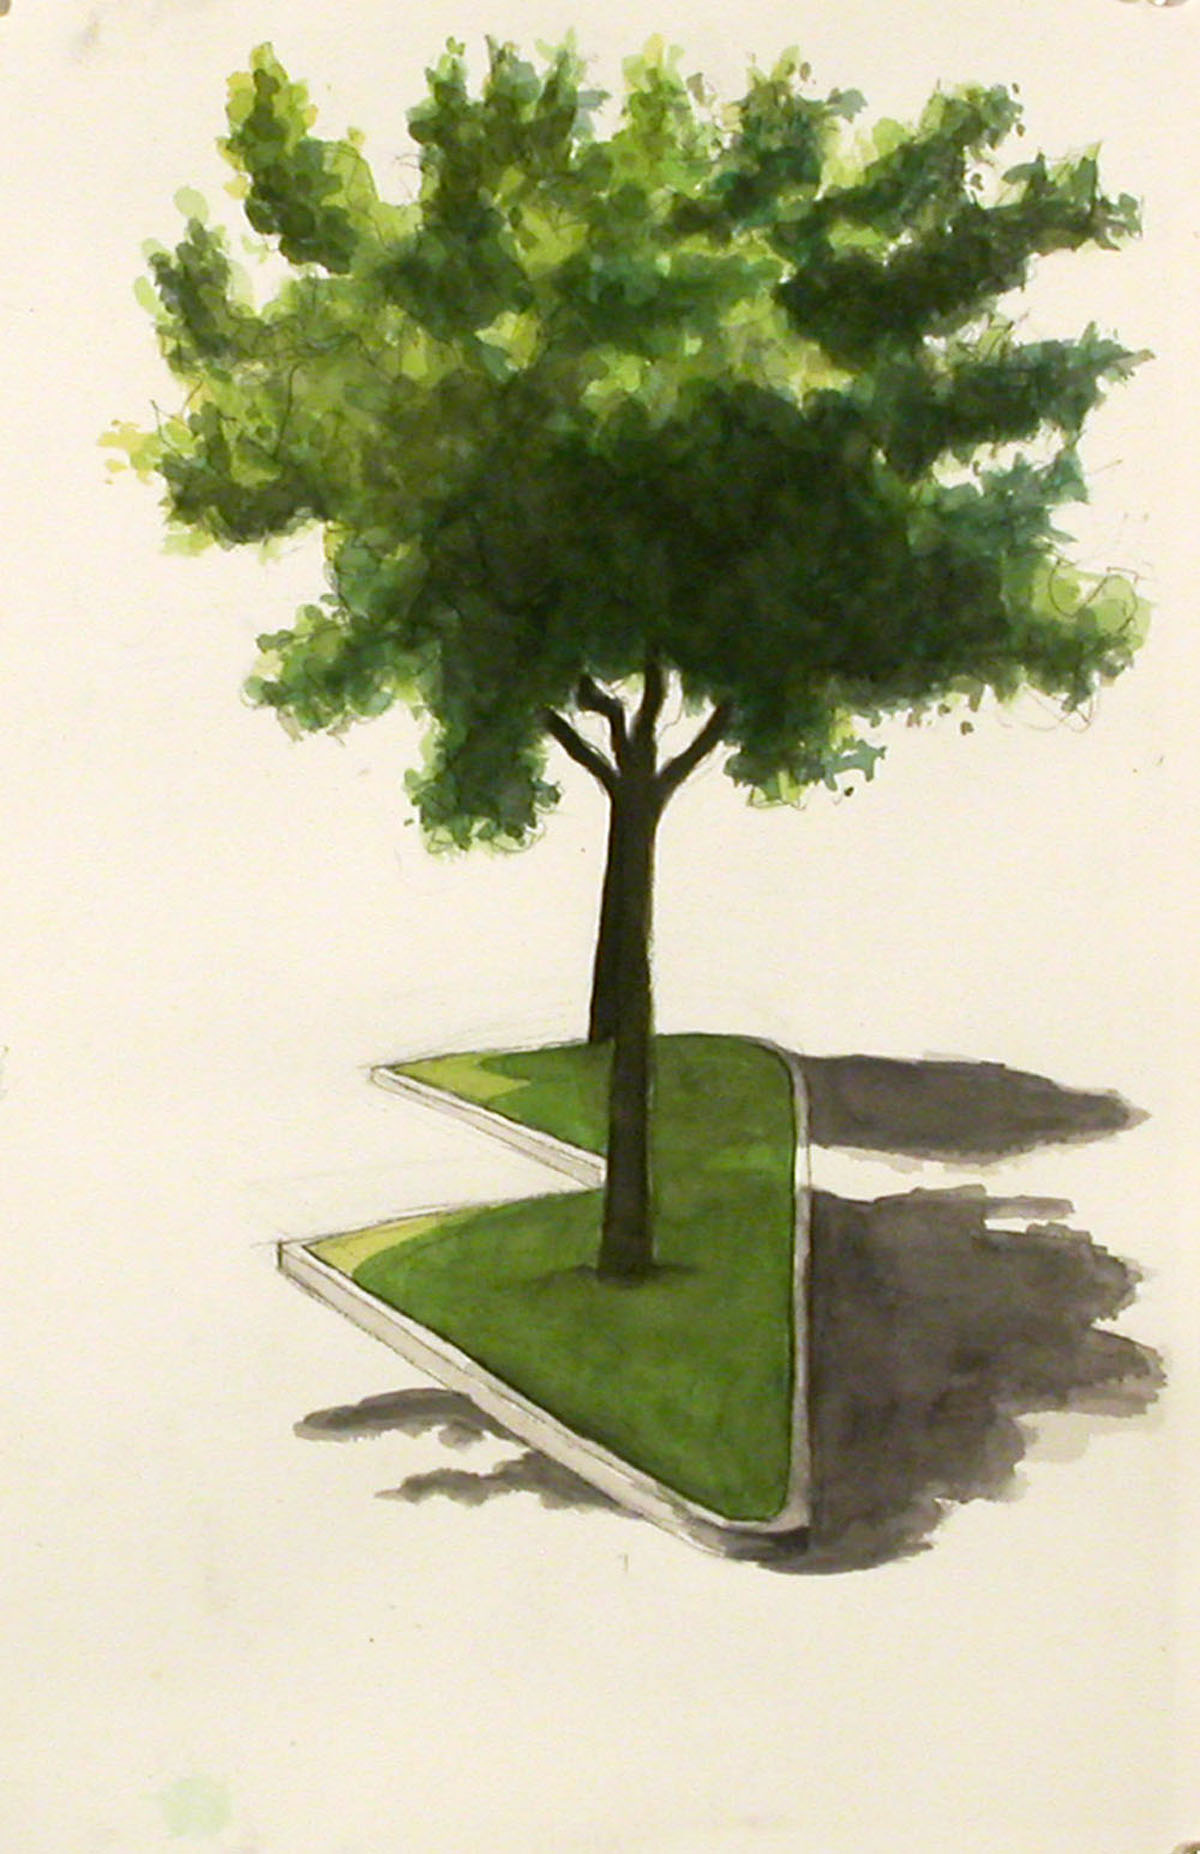 Tree island 2, 2003, watercolor, 13 x 9 in.